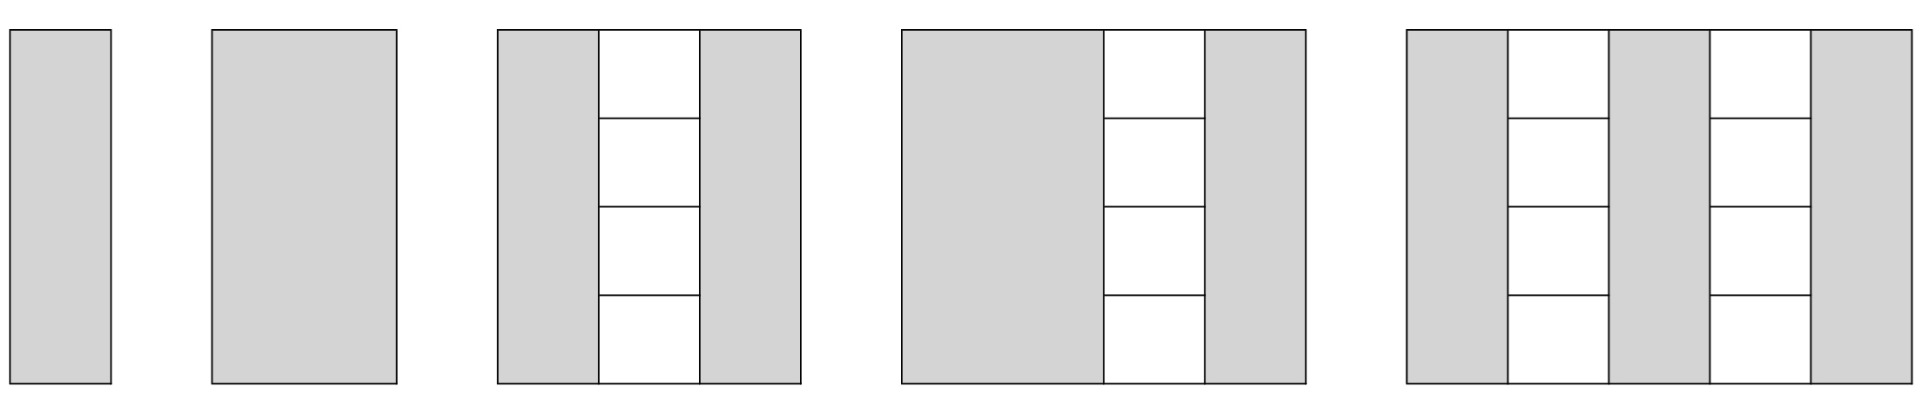 Easily create widths of any scale